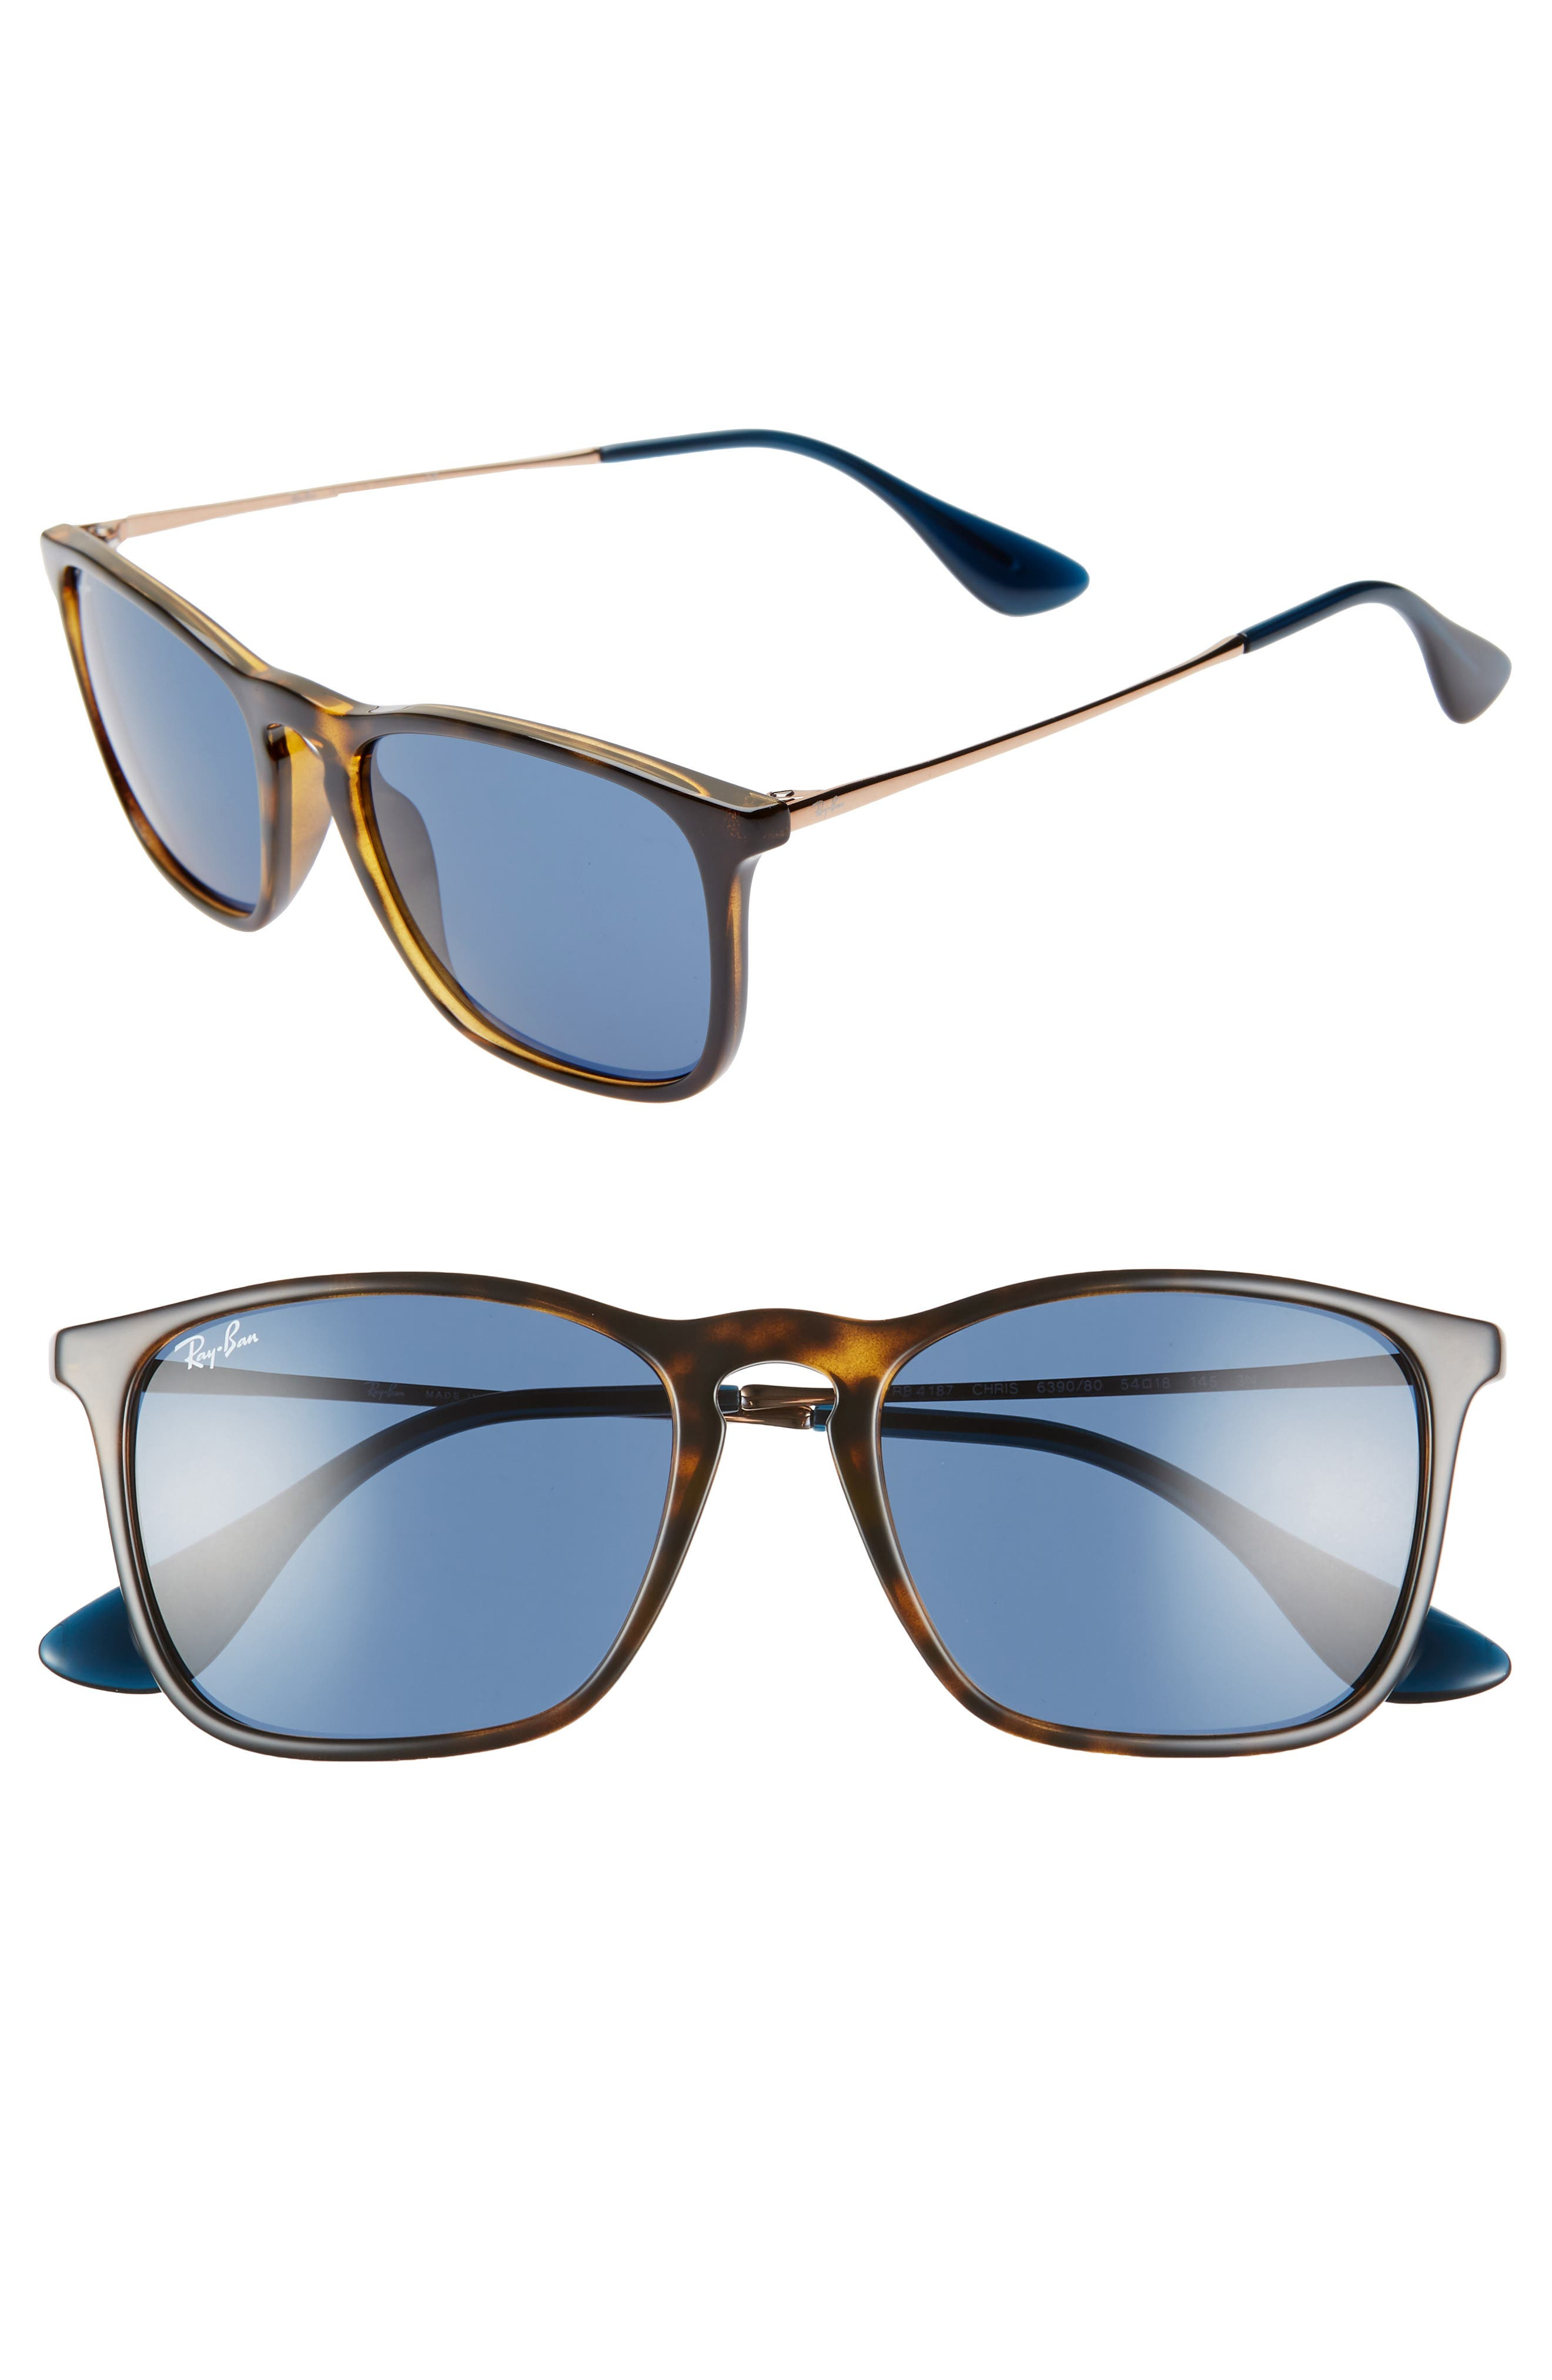 cd42ce84ab45 Ray-Ban Youngster 5m Square Keyhole Sunglasses - Tortoise/ Blue Solid